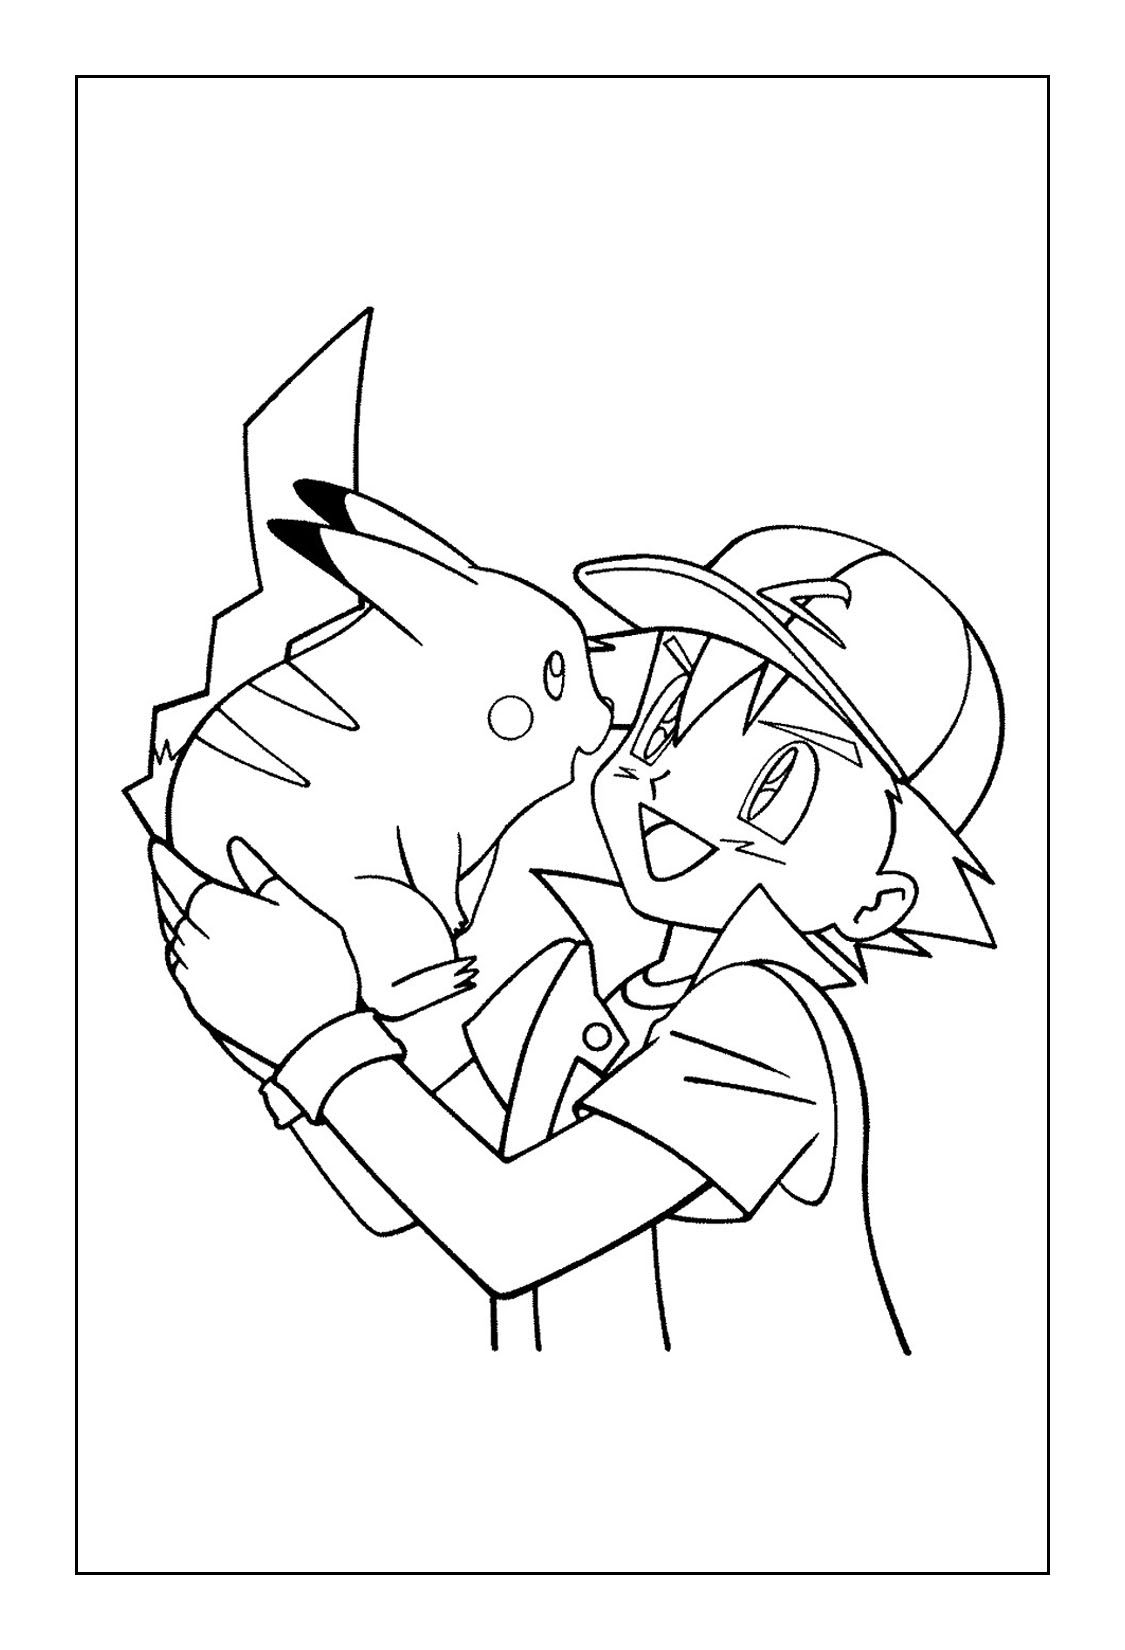 Printable Pikachu Coloring Pages Ash And Pikachu Pokemon Coloring Pages Pikachu Coloring Page Pokemon Coloring